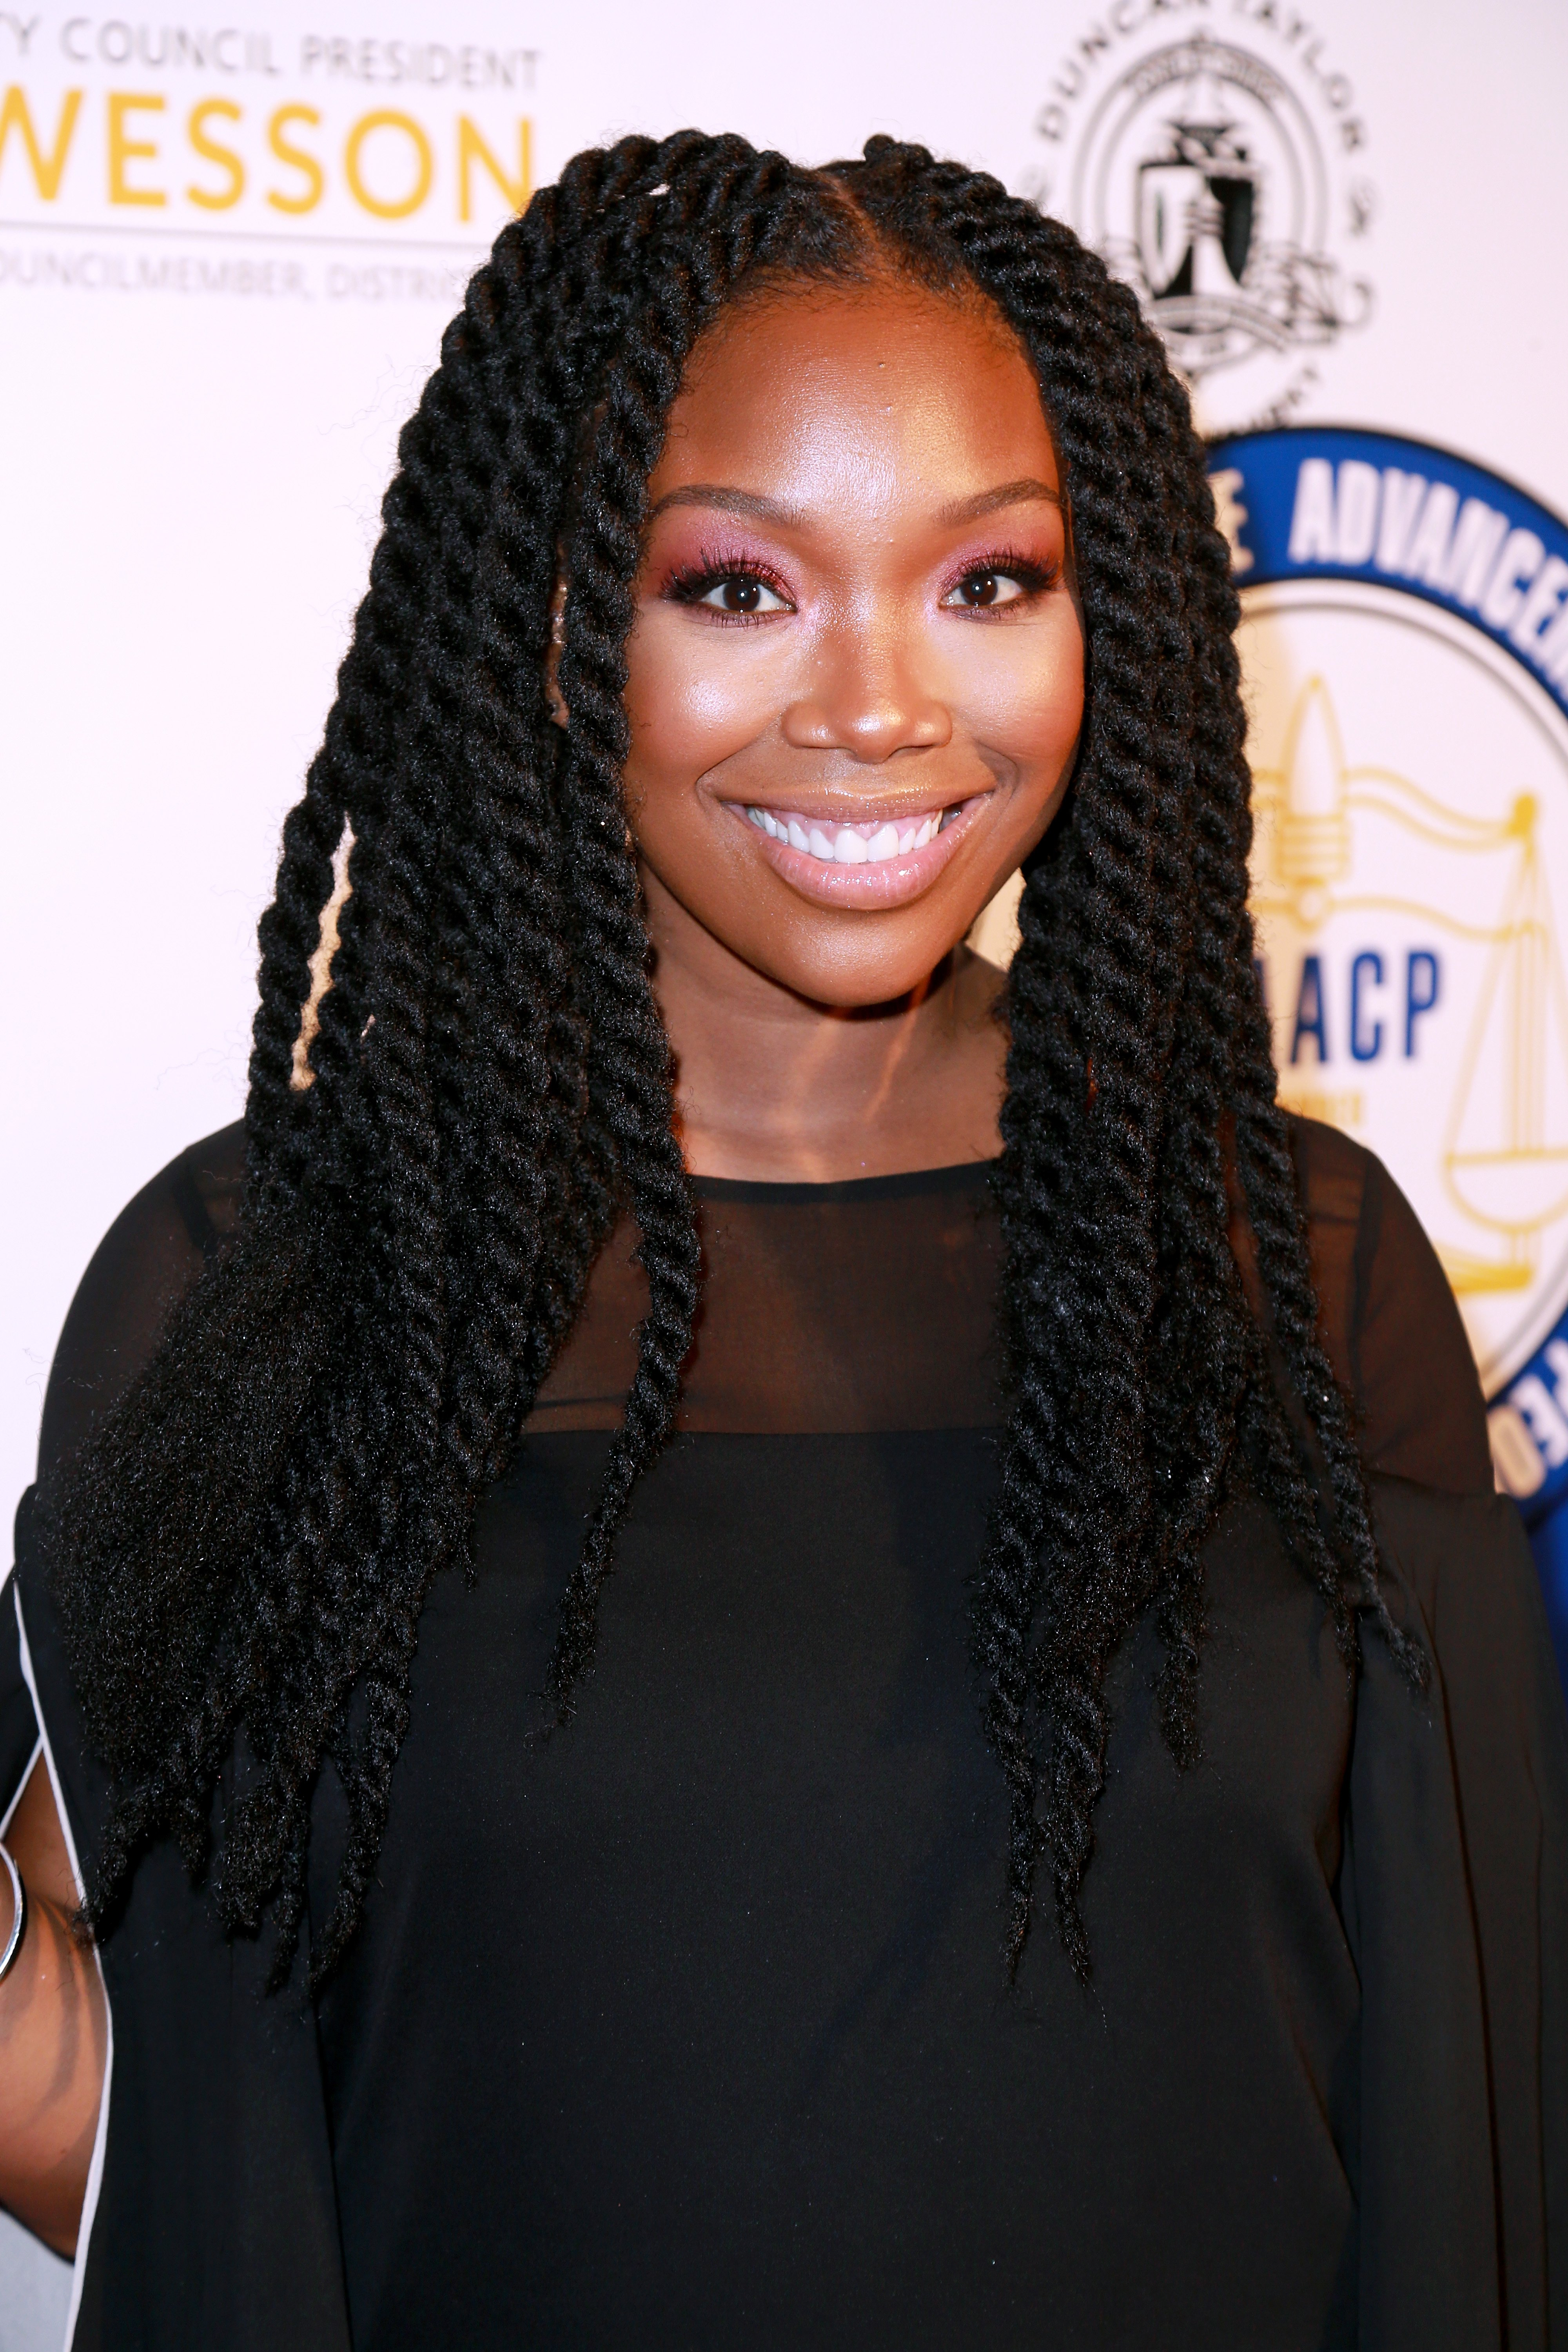 Brandy Norwood at the 27th Annual NAACP Theatre Awards in February 2018. | Photo: Getty Images